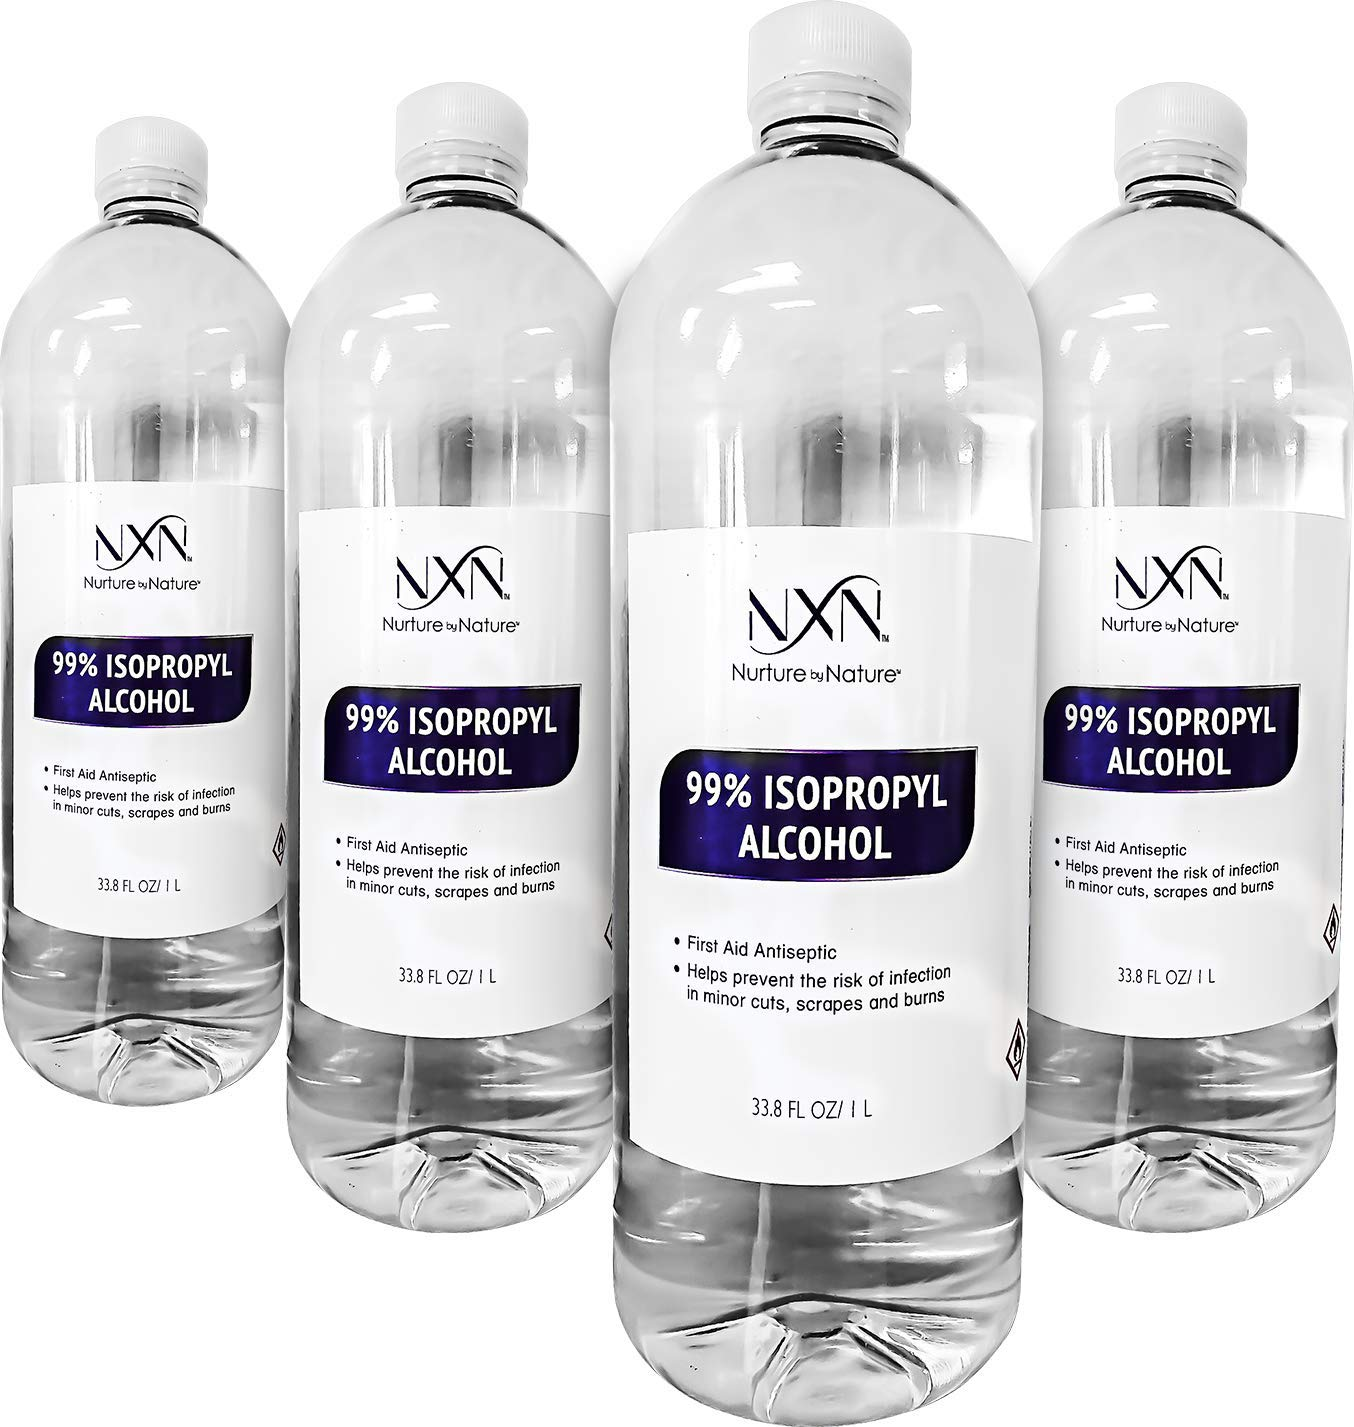 99.8% Pure Isopropyl Alcohol - Highest Purity & Quality - 1 Liter Bottles - Pack of 4 (135.2 FL Oz - 4,000mL Total)